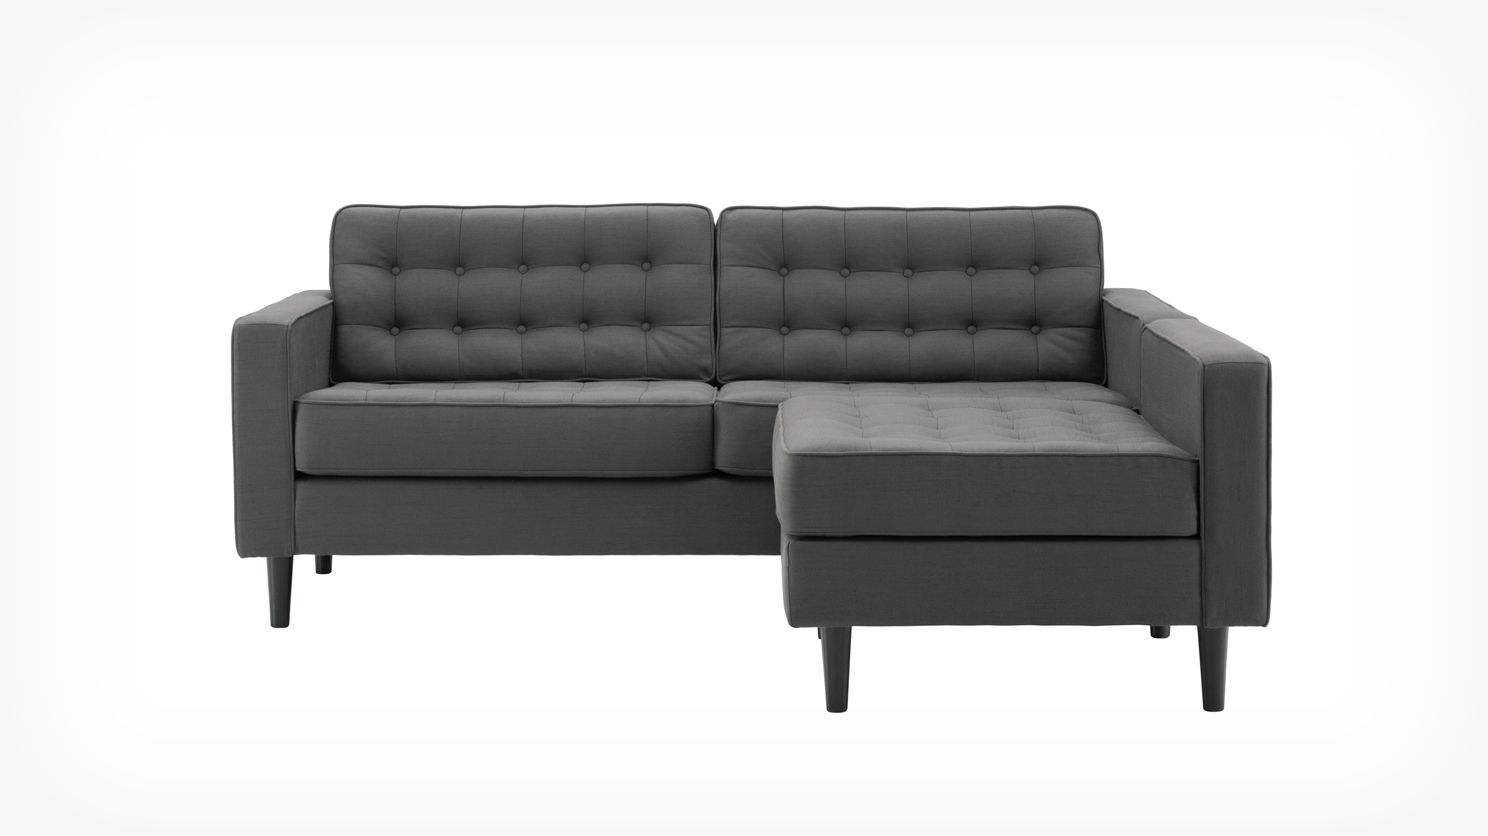 2 piece sectional sofa with chaise design homesfeed for Chaise designer